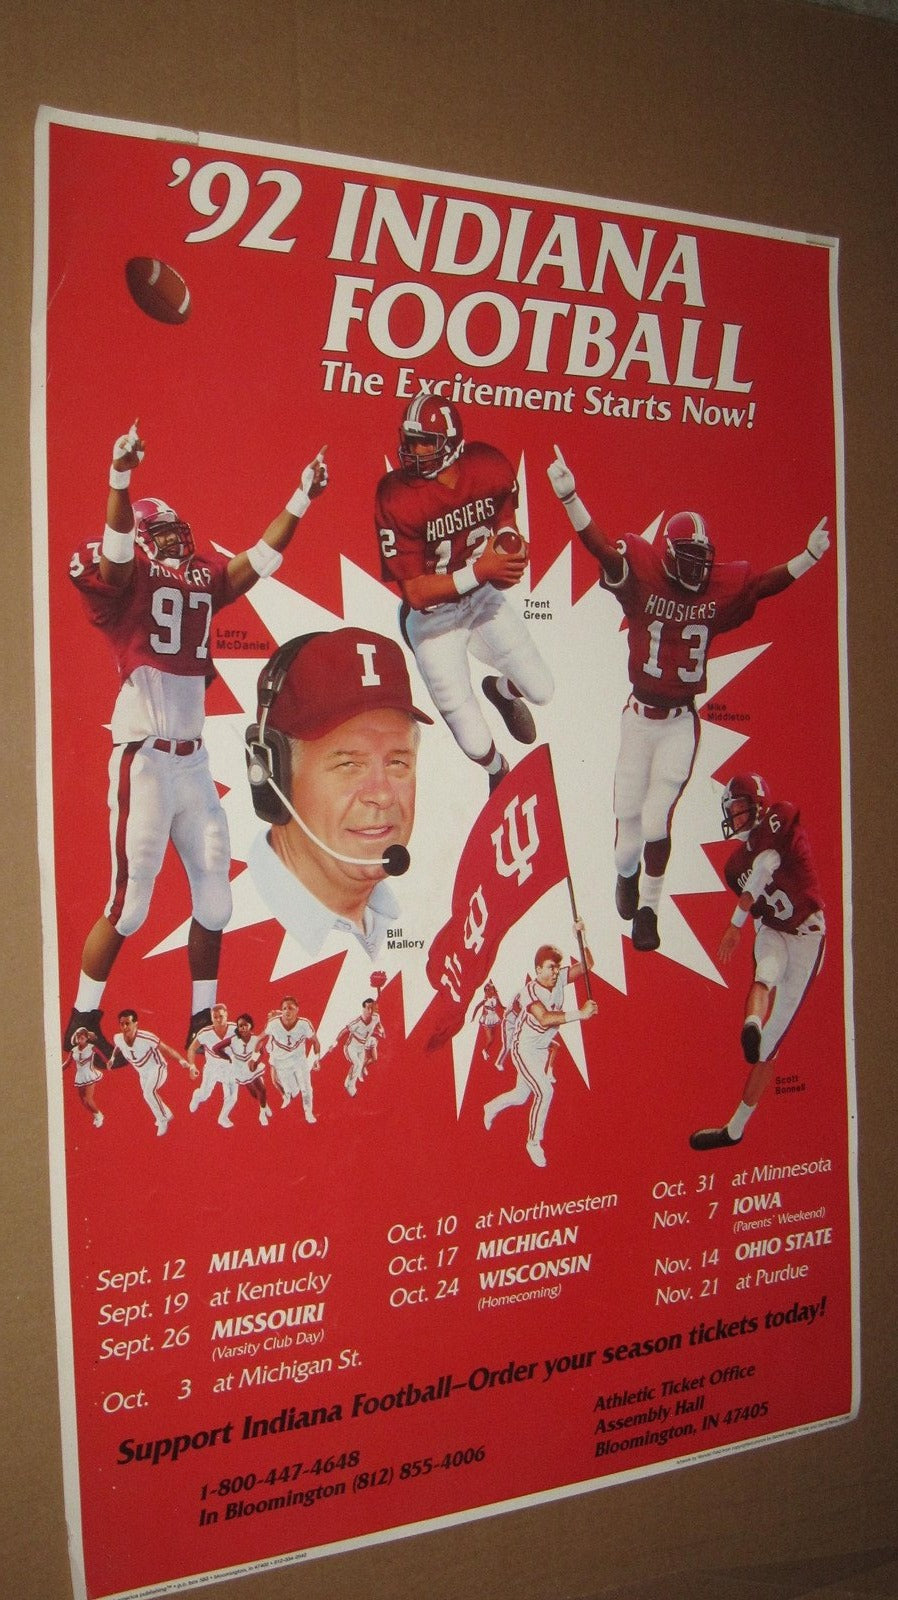 1992 Indiana University Football Schedule Poster 17x24 - Vintage Indy Sports